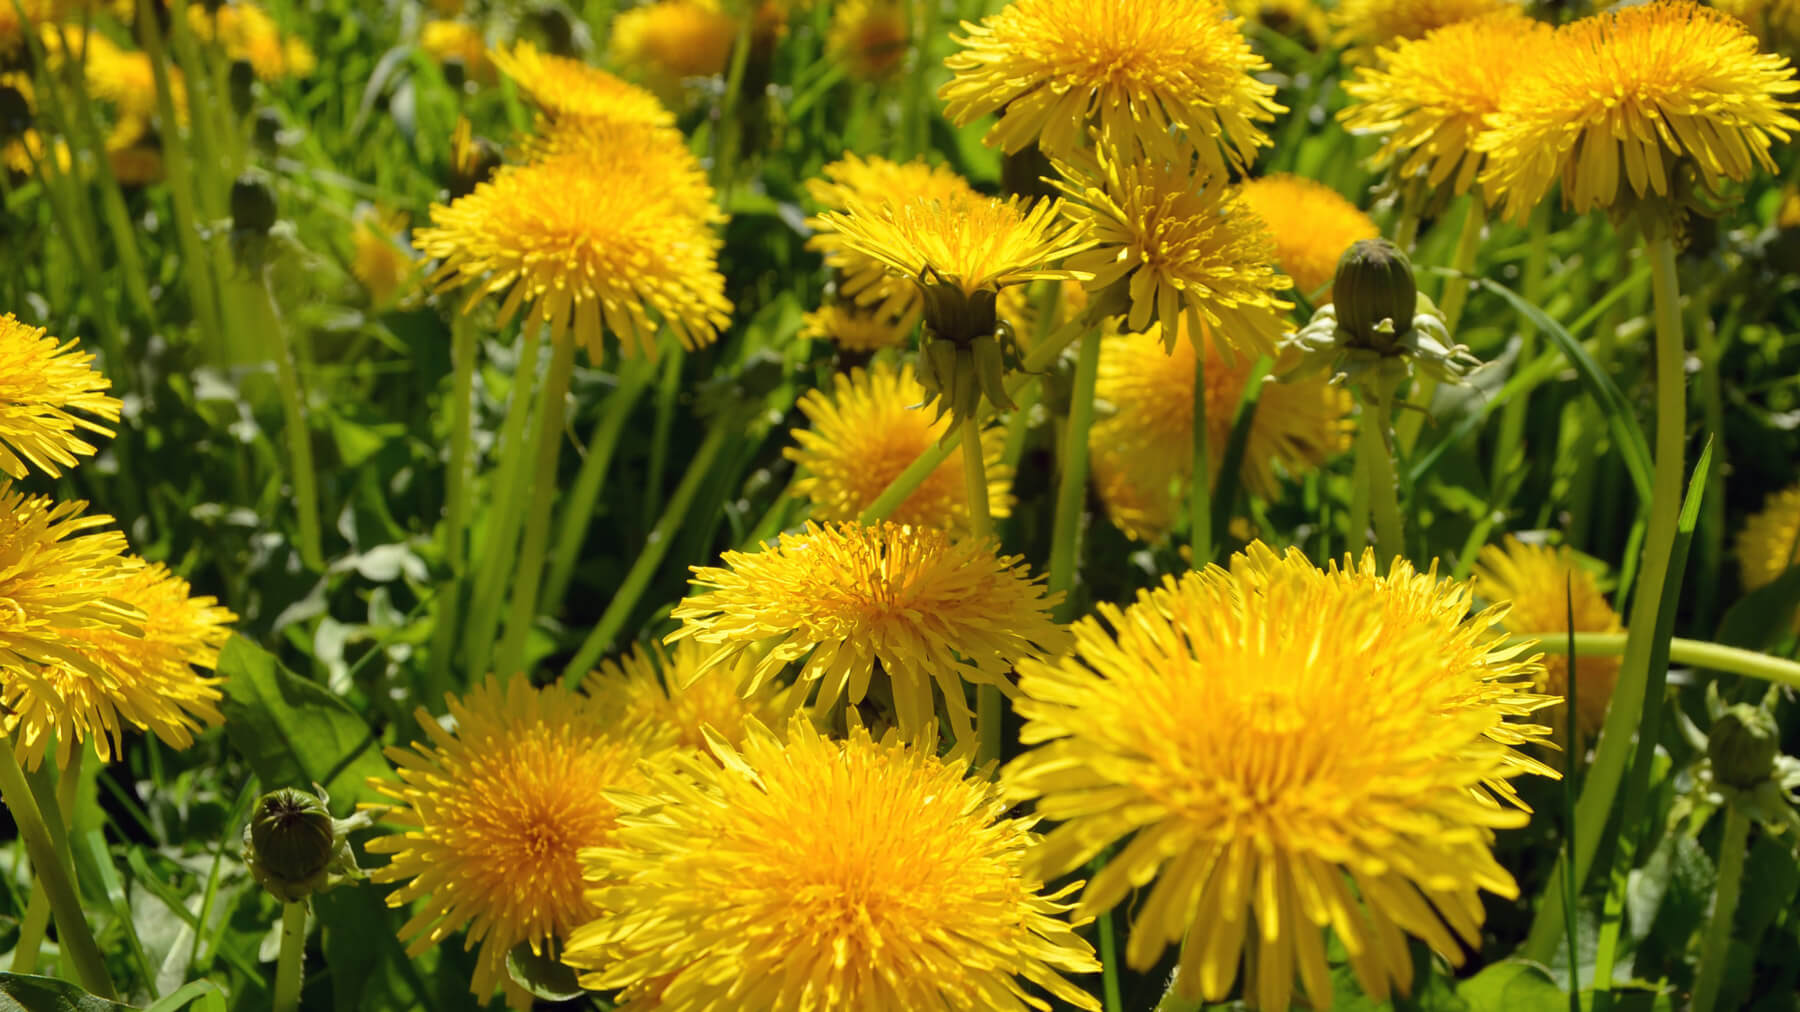 Dandelion for digestive problems - Goldleaf